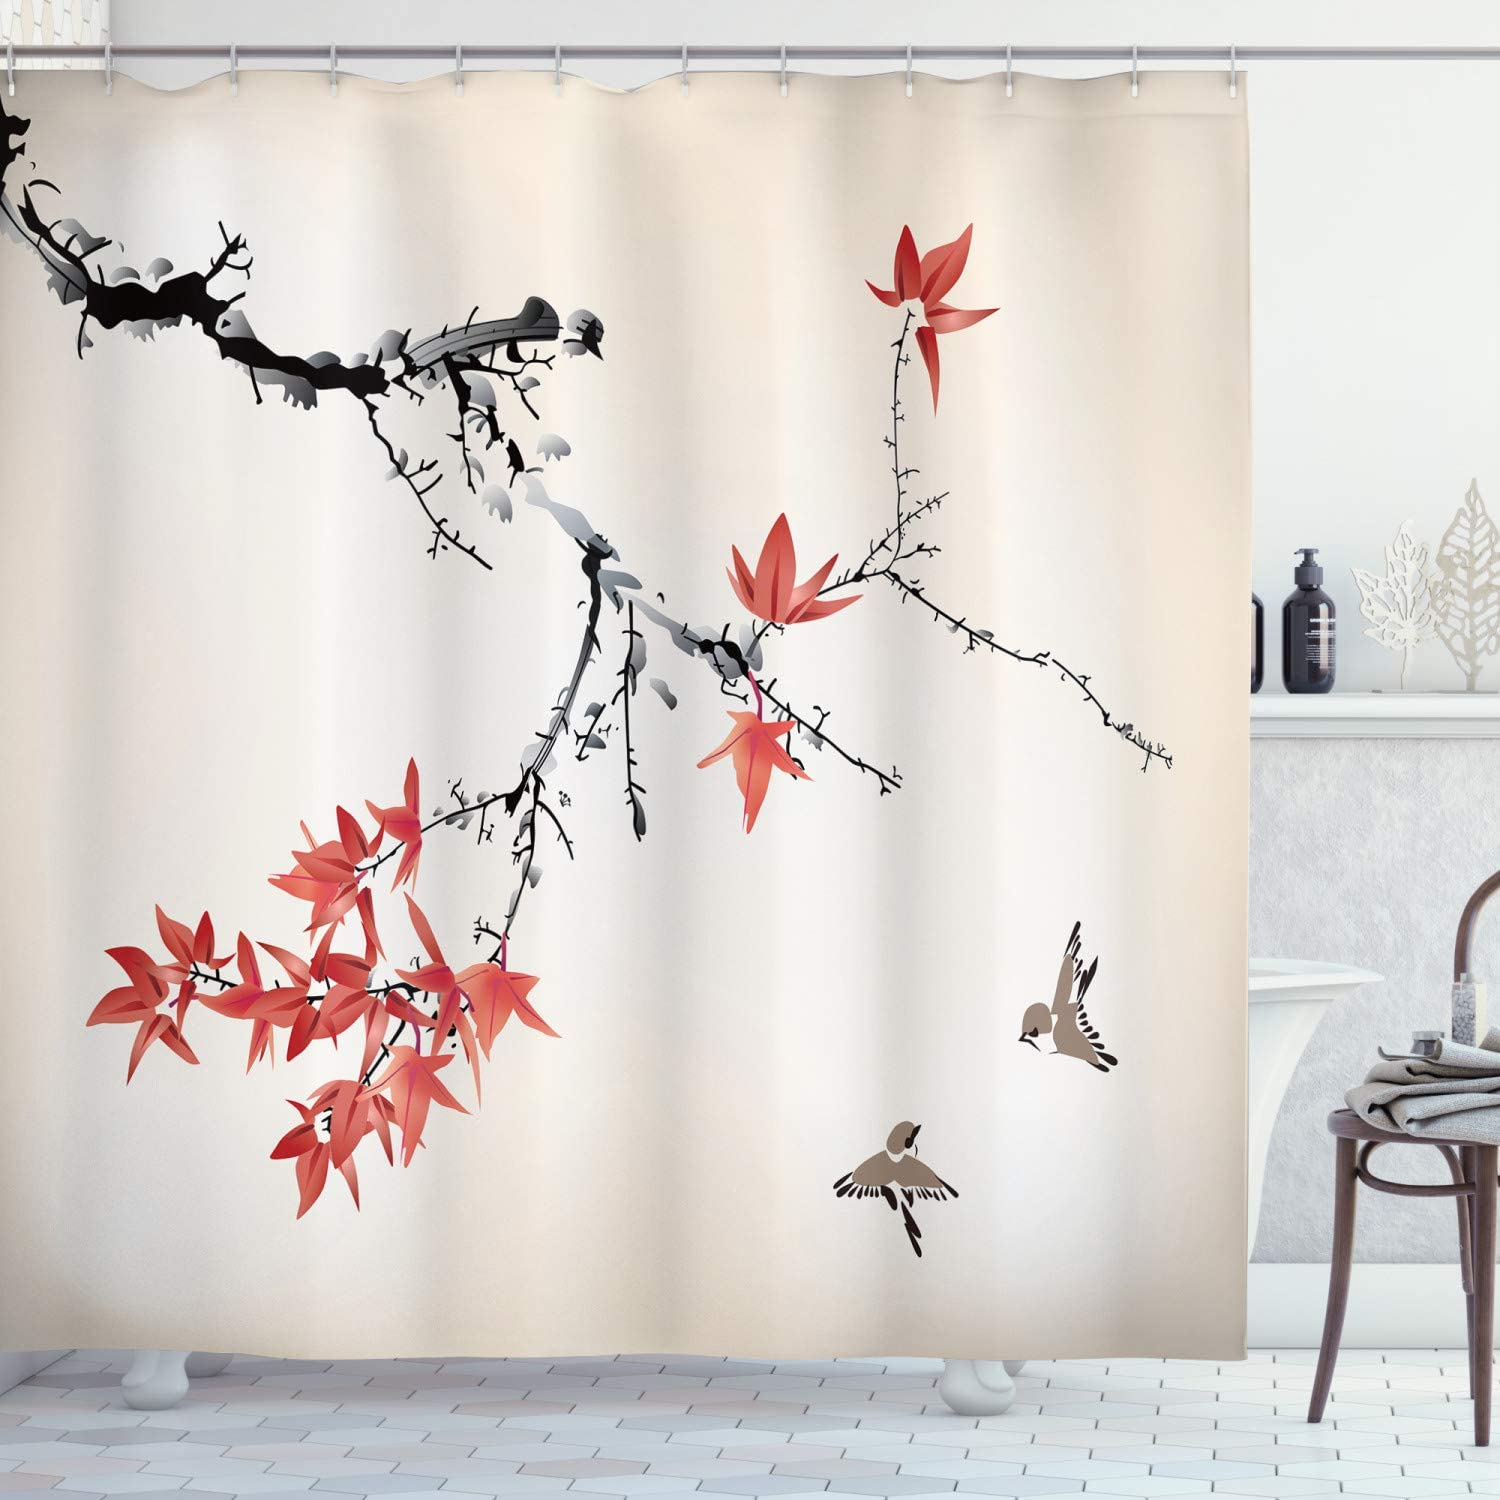 "Ambesonne Japanese Shower Curtain, Cherry Blossom Sakura Tree Branches Romantic Spring Themed Watercolor Picture, Cloth Fabric Bathroom Decor Set with Hooks, 70"" Long, Coral Black"